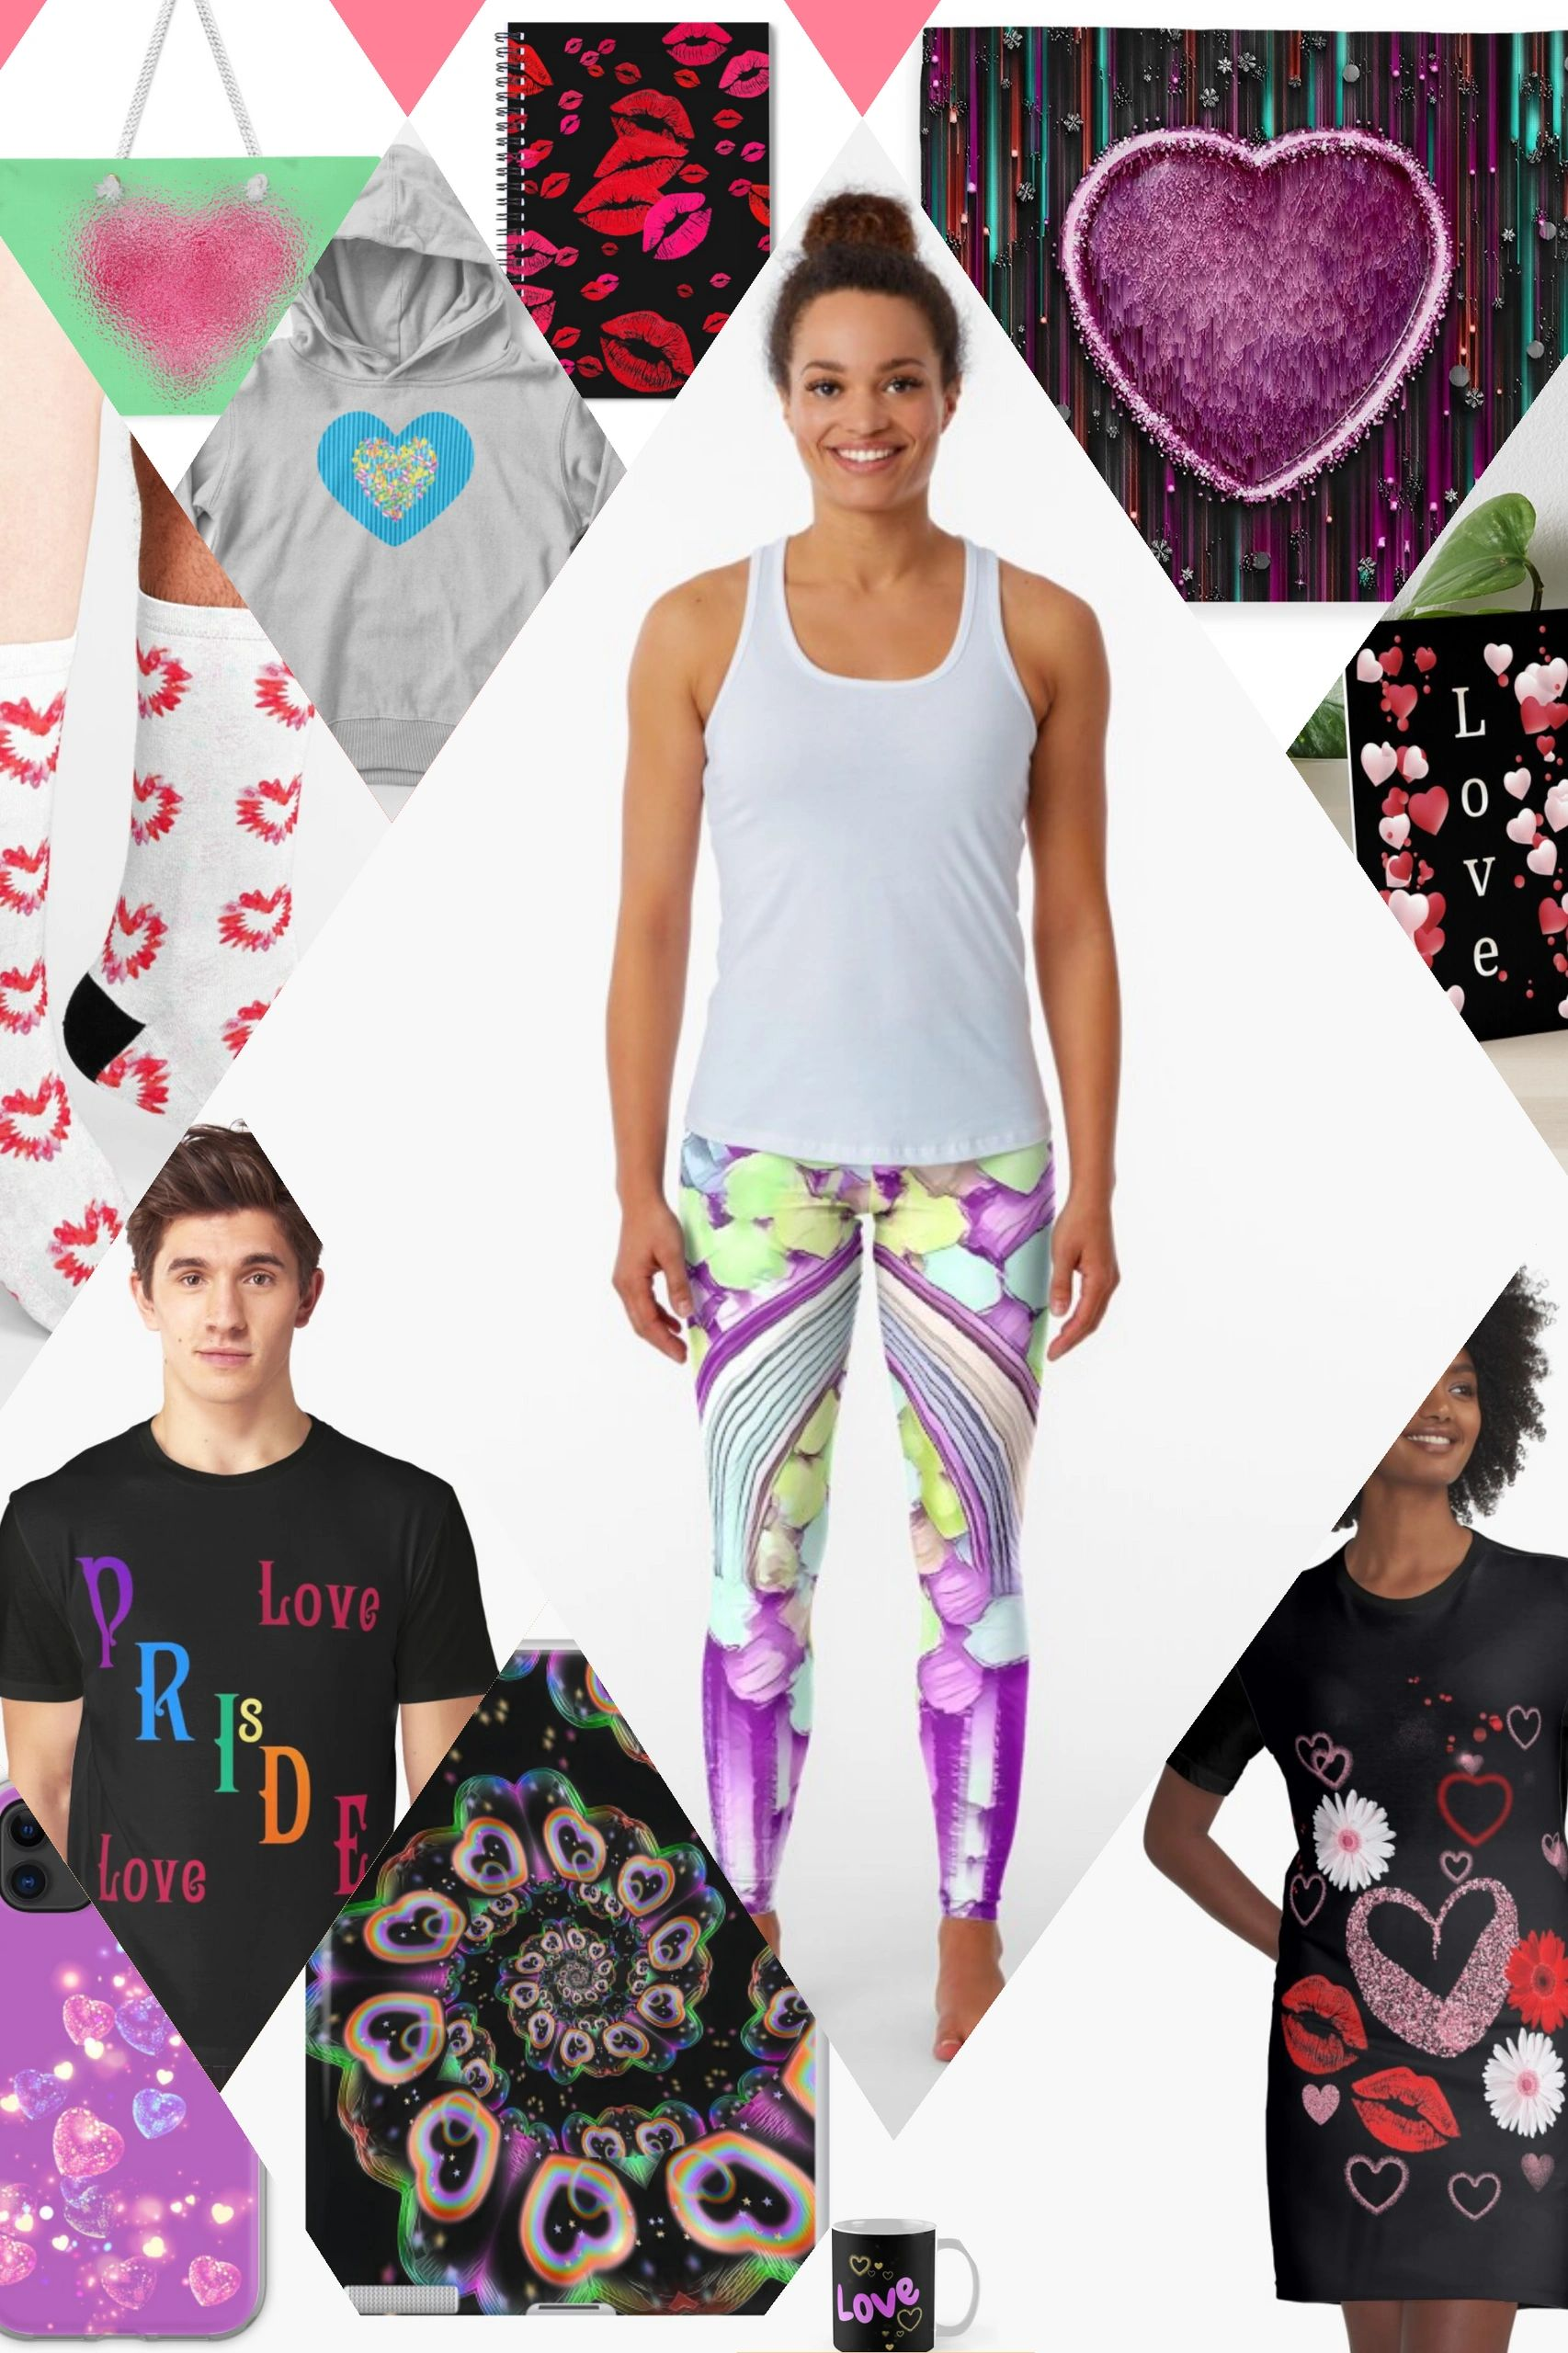 Roanemermaid's Valentine's Day Gift Guide For Everyone